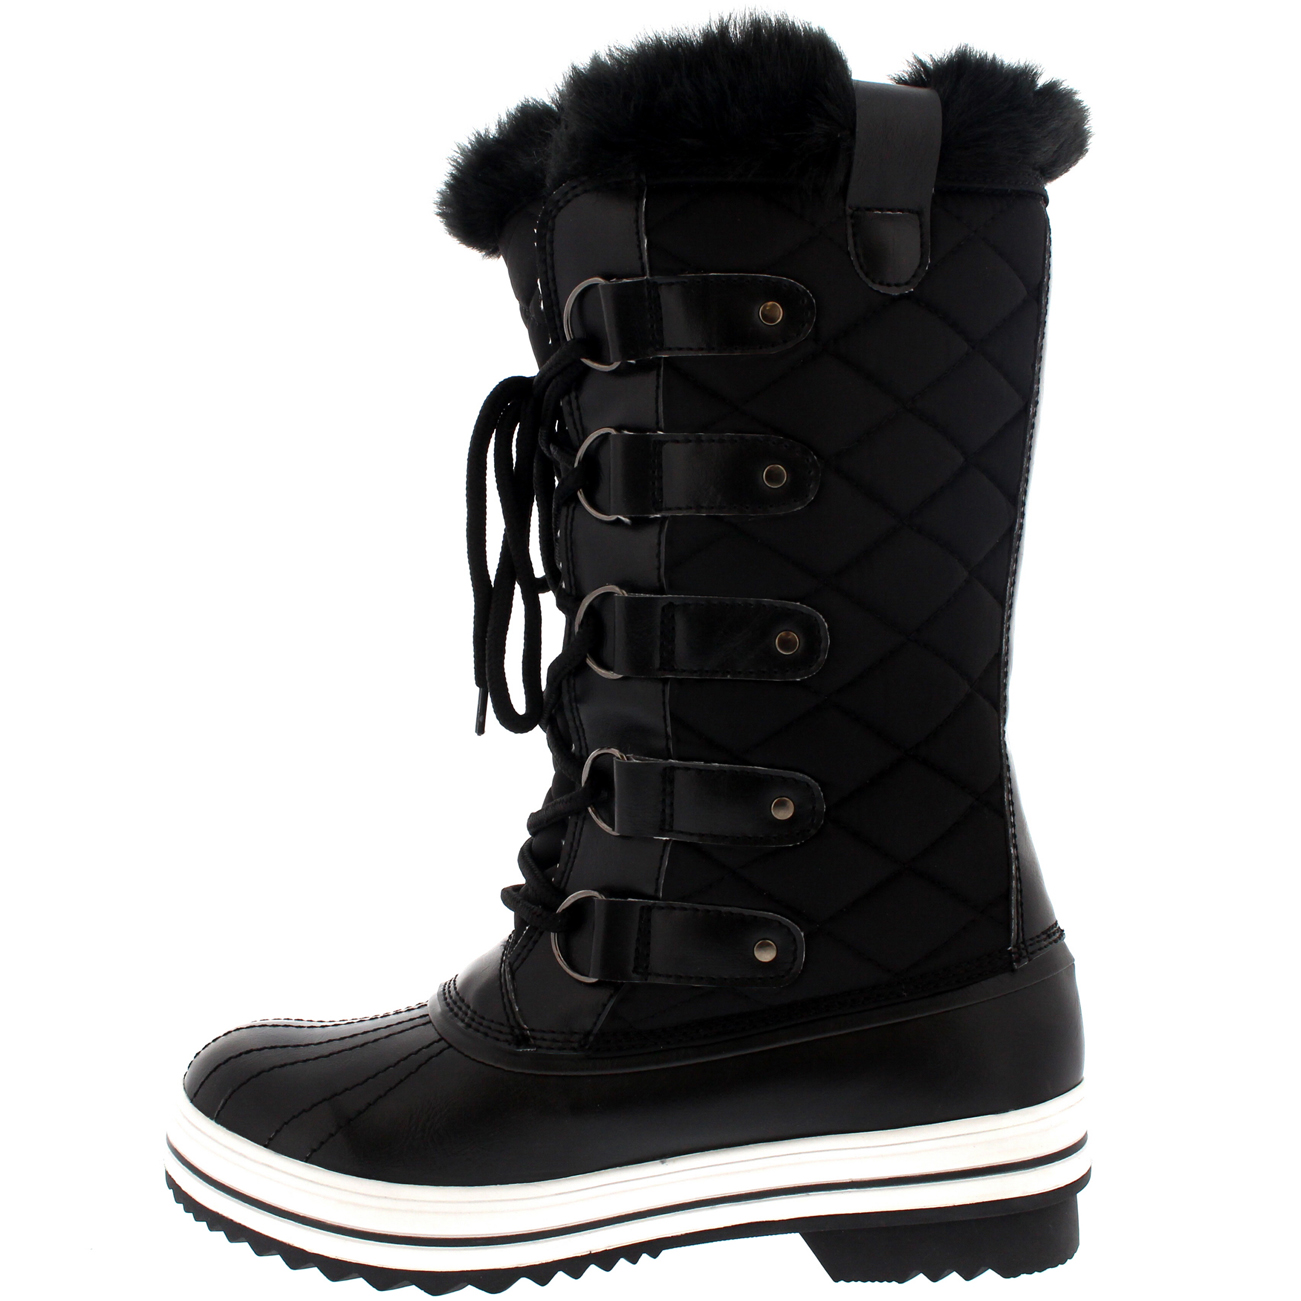 Cool   Boots  Snow Boots  Womens Black Winter Snow Moon Ski Boots